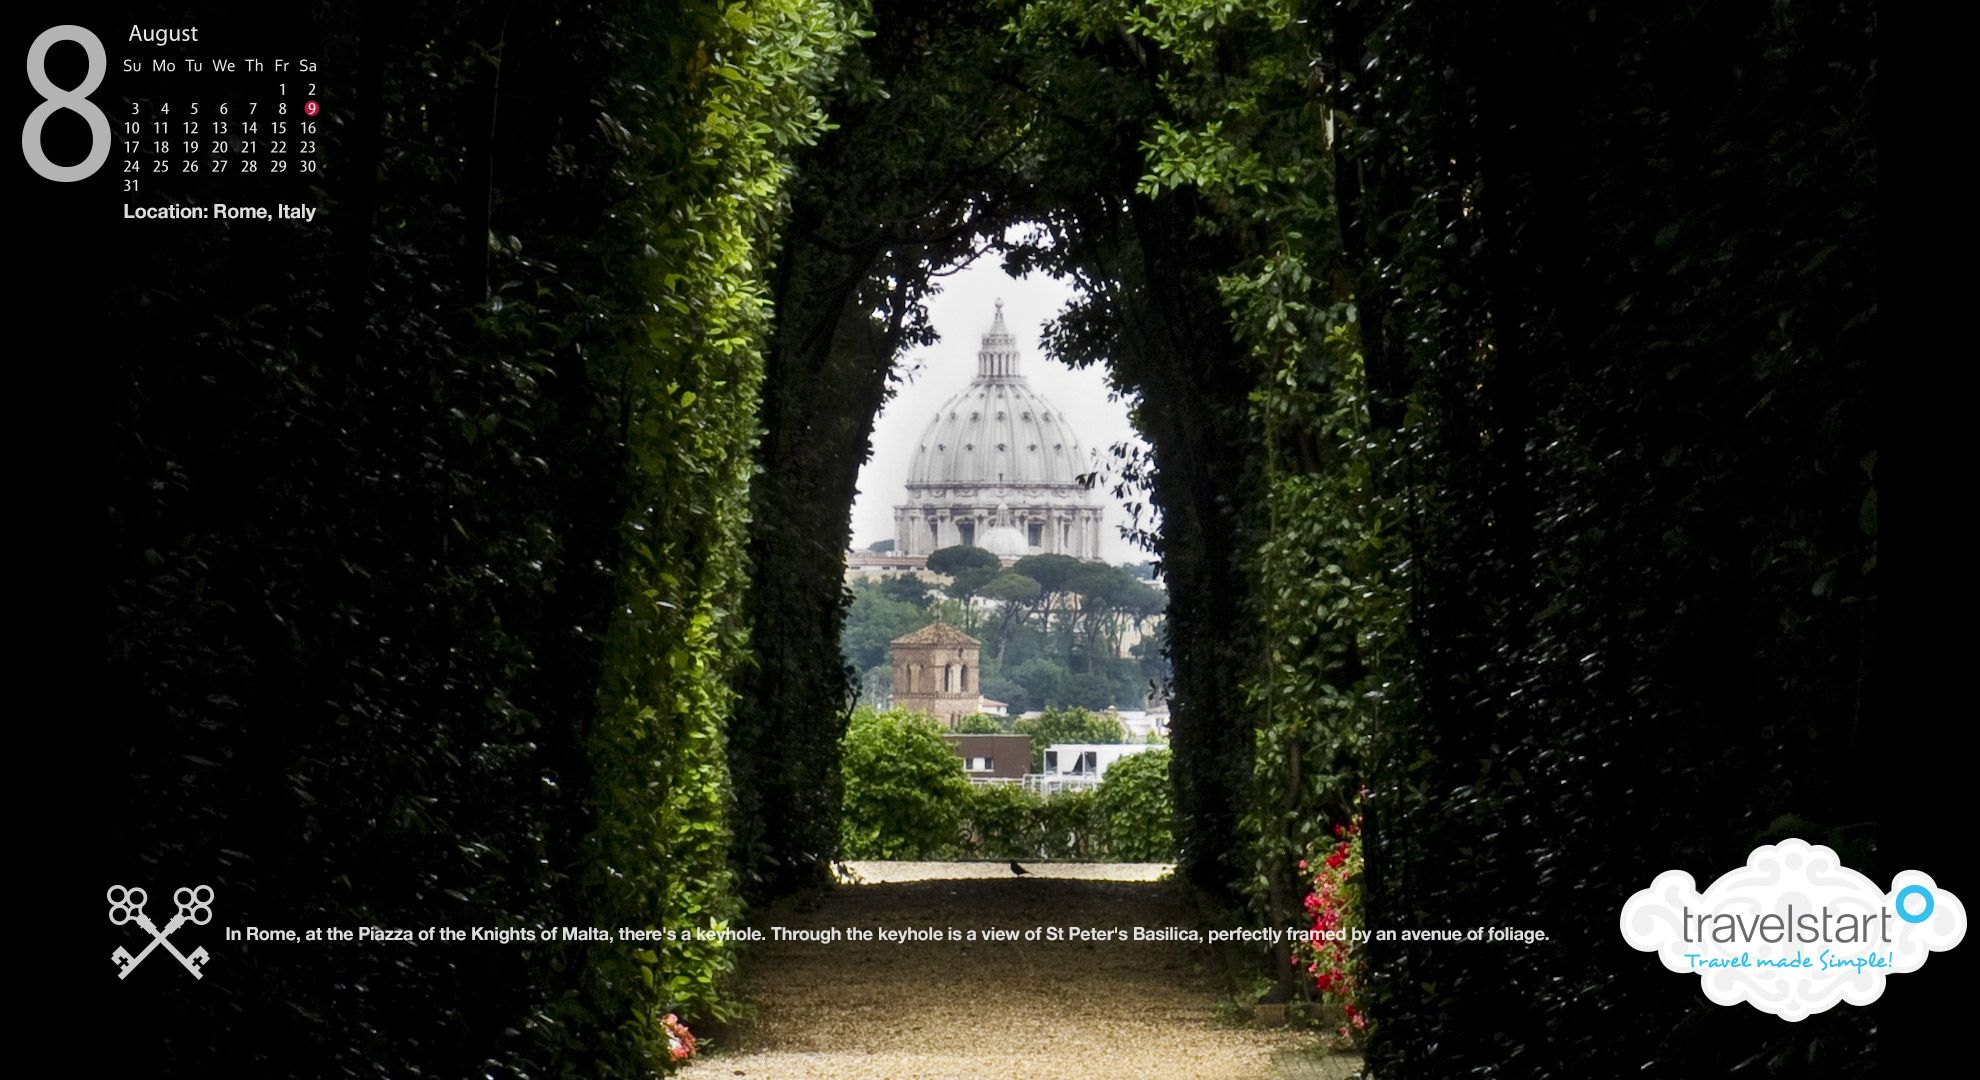 Download me! August Wallpaper featuring the keyhole view from the Priory of the Knights of Malta